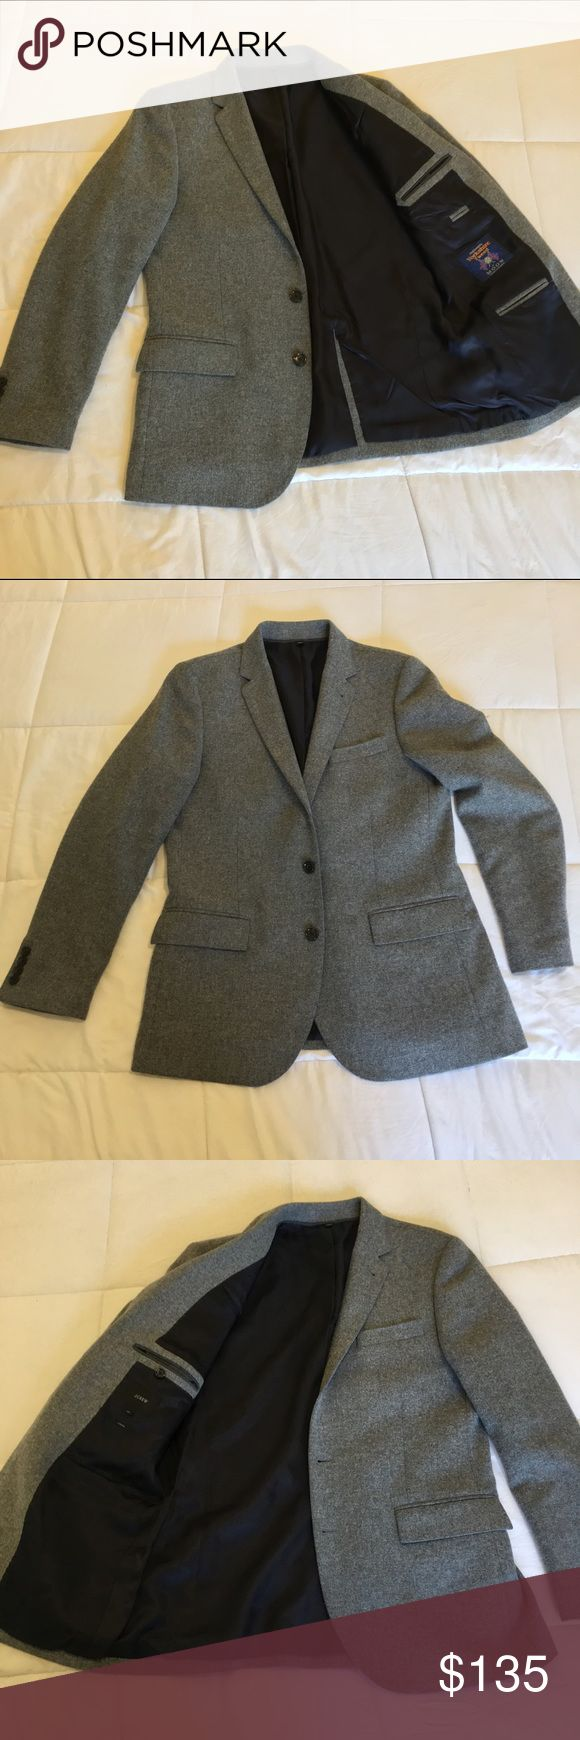 J Crew Ludlow Yorkshire Tweed Blazer Sz 40R SOLD This jacket is in great condition! J Crew Ludlow Tweed Blazer by Abraham Moon. Color: Gray , Size: 40R  Very stylish. Perfect for Fall & Winter, or to give your look a classy edge. J. Crew Suits & Blazers Sport Coats & Blazers